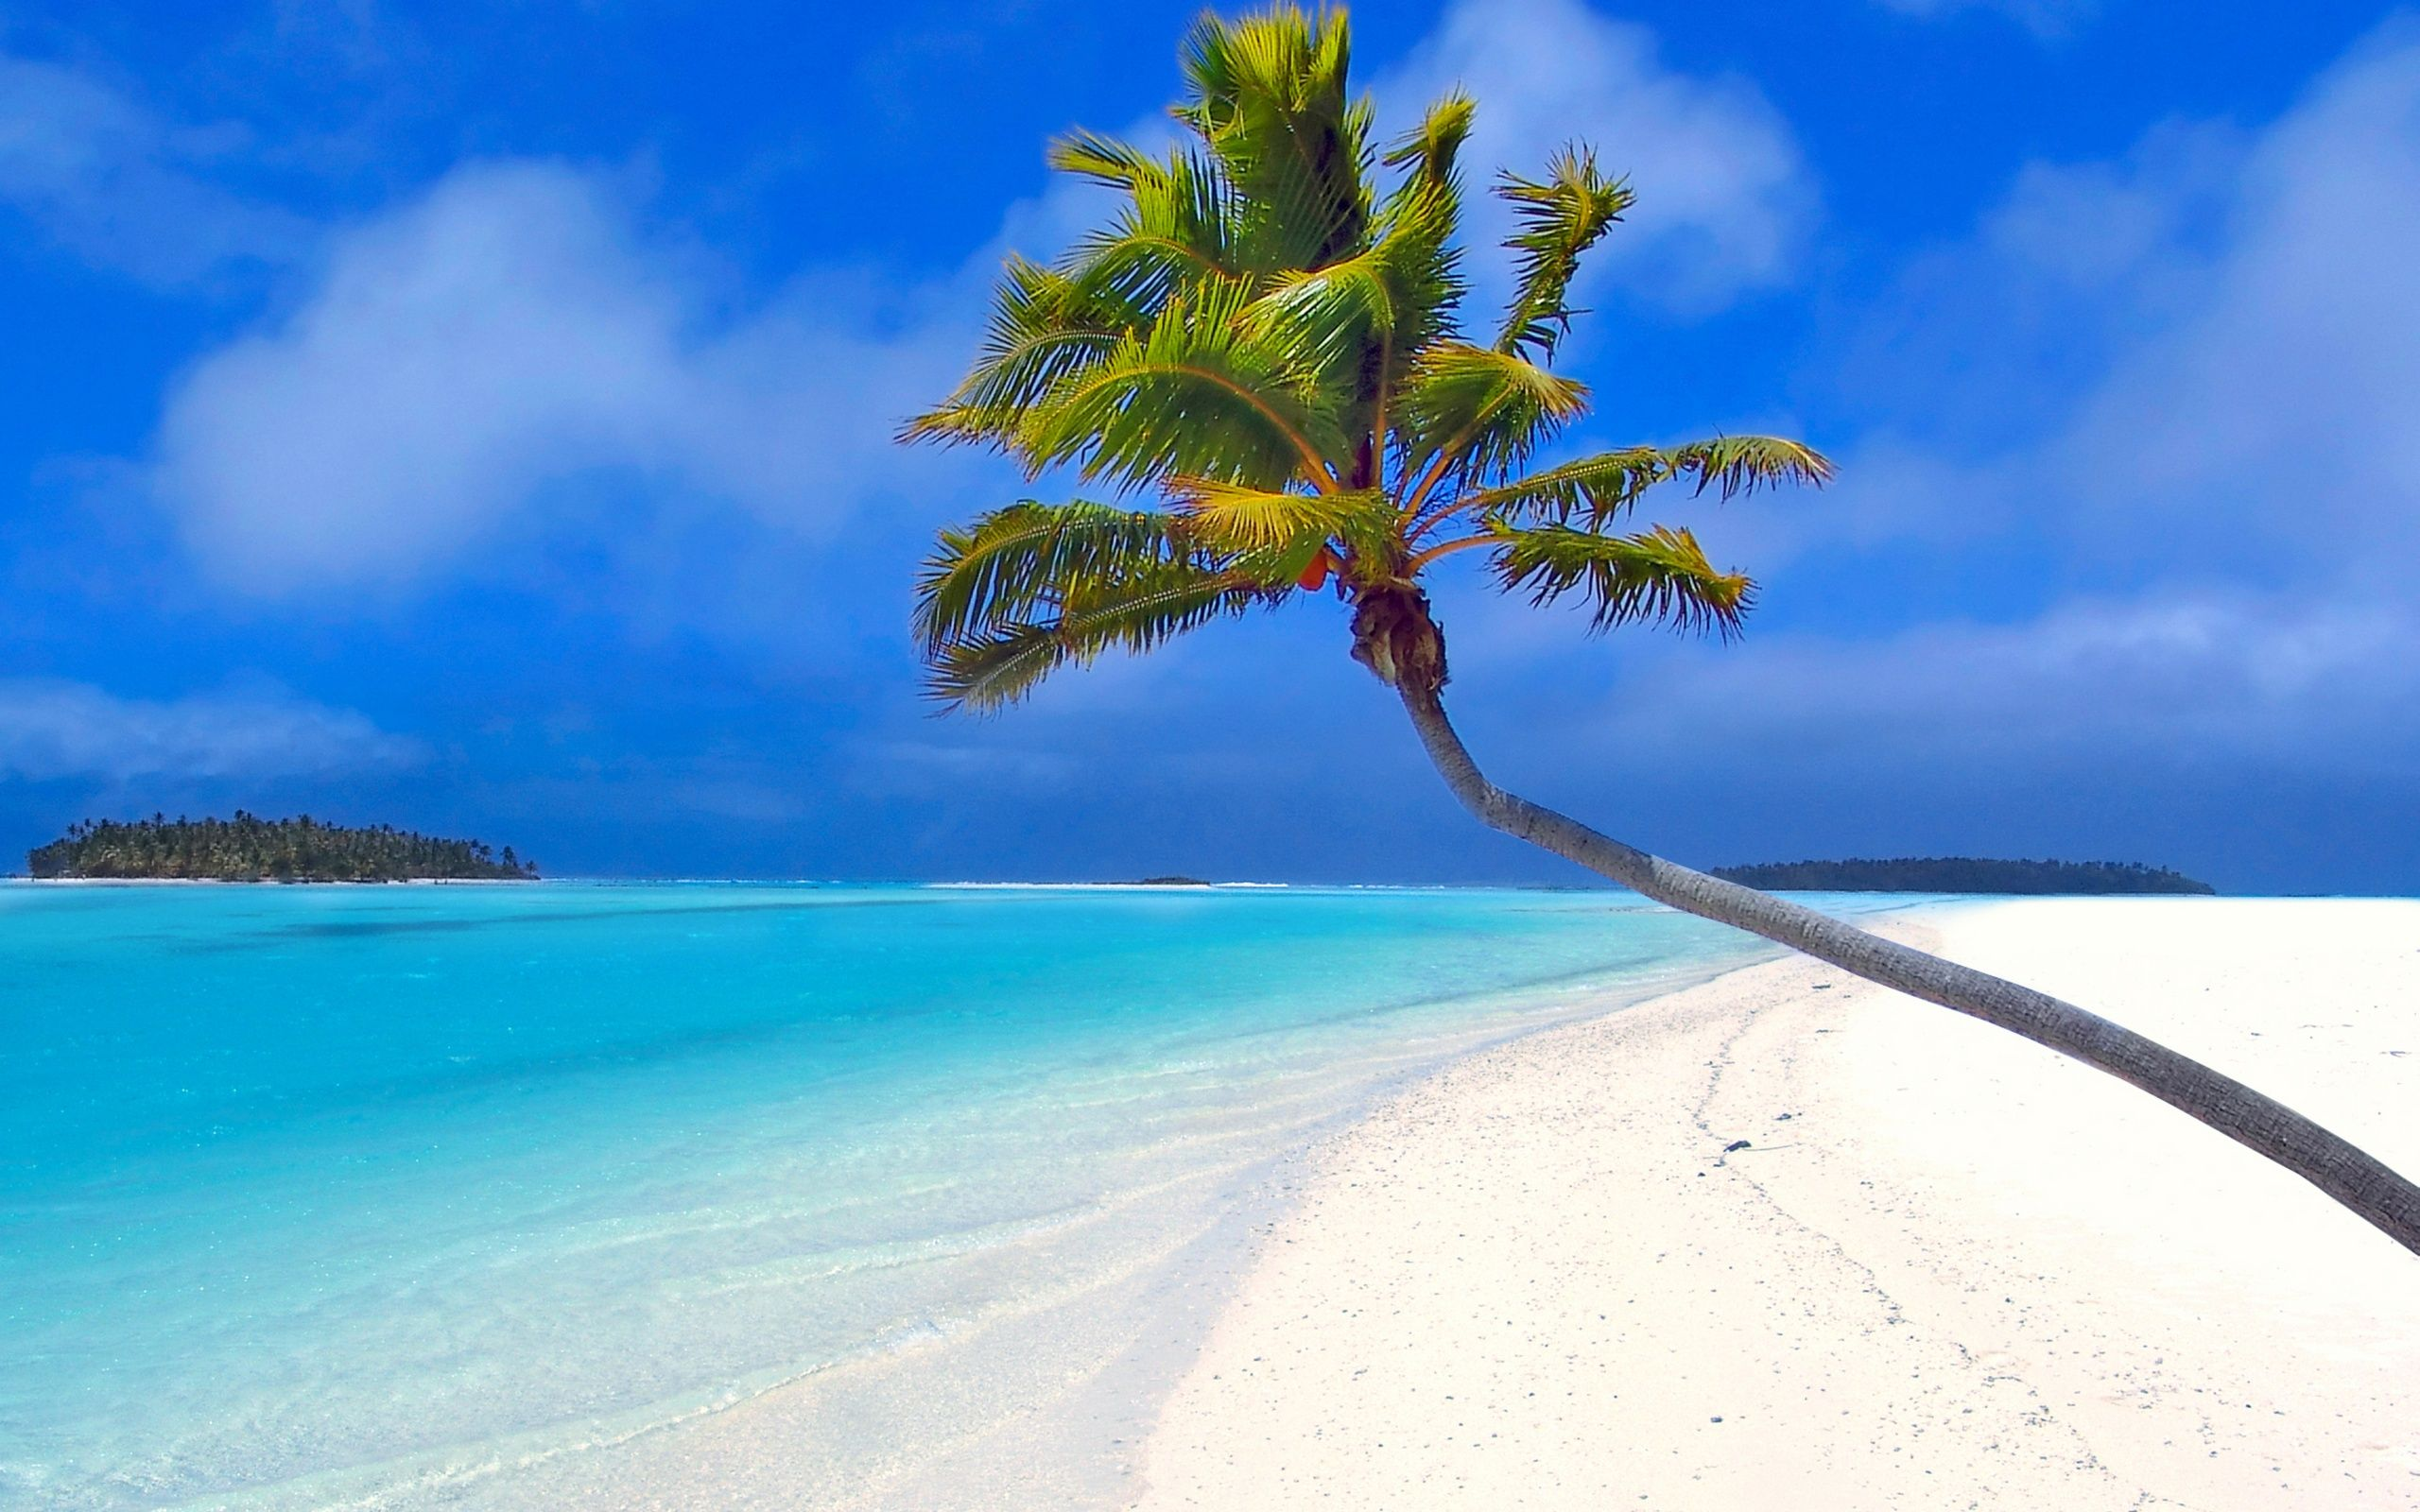 Palm Beach Wallpapers Top Free Palm Beach Backgrounds